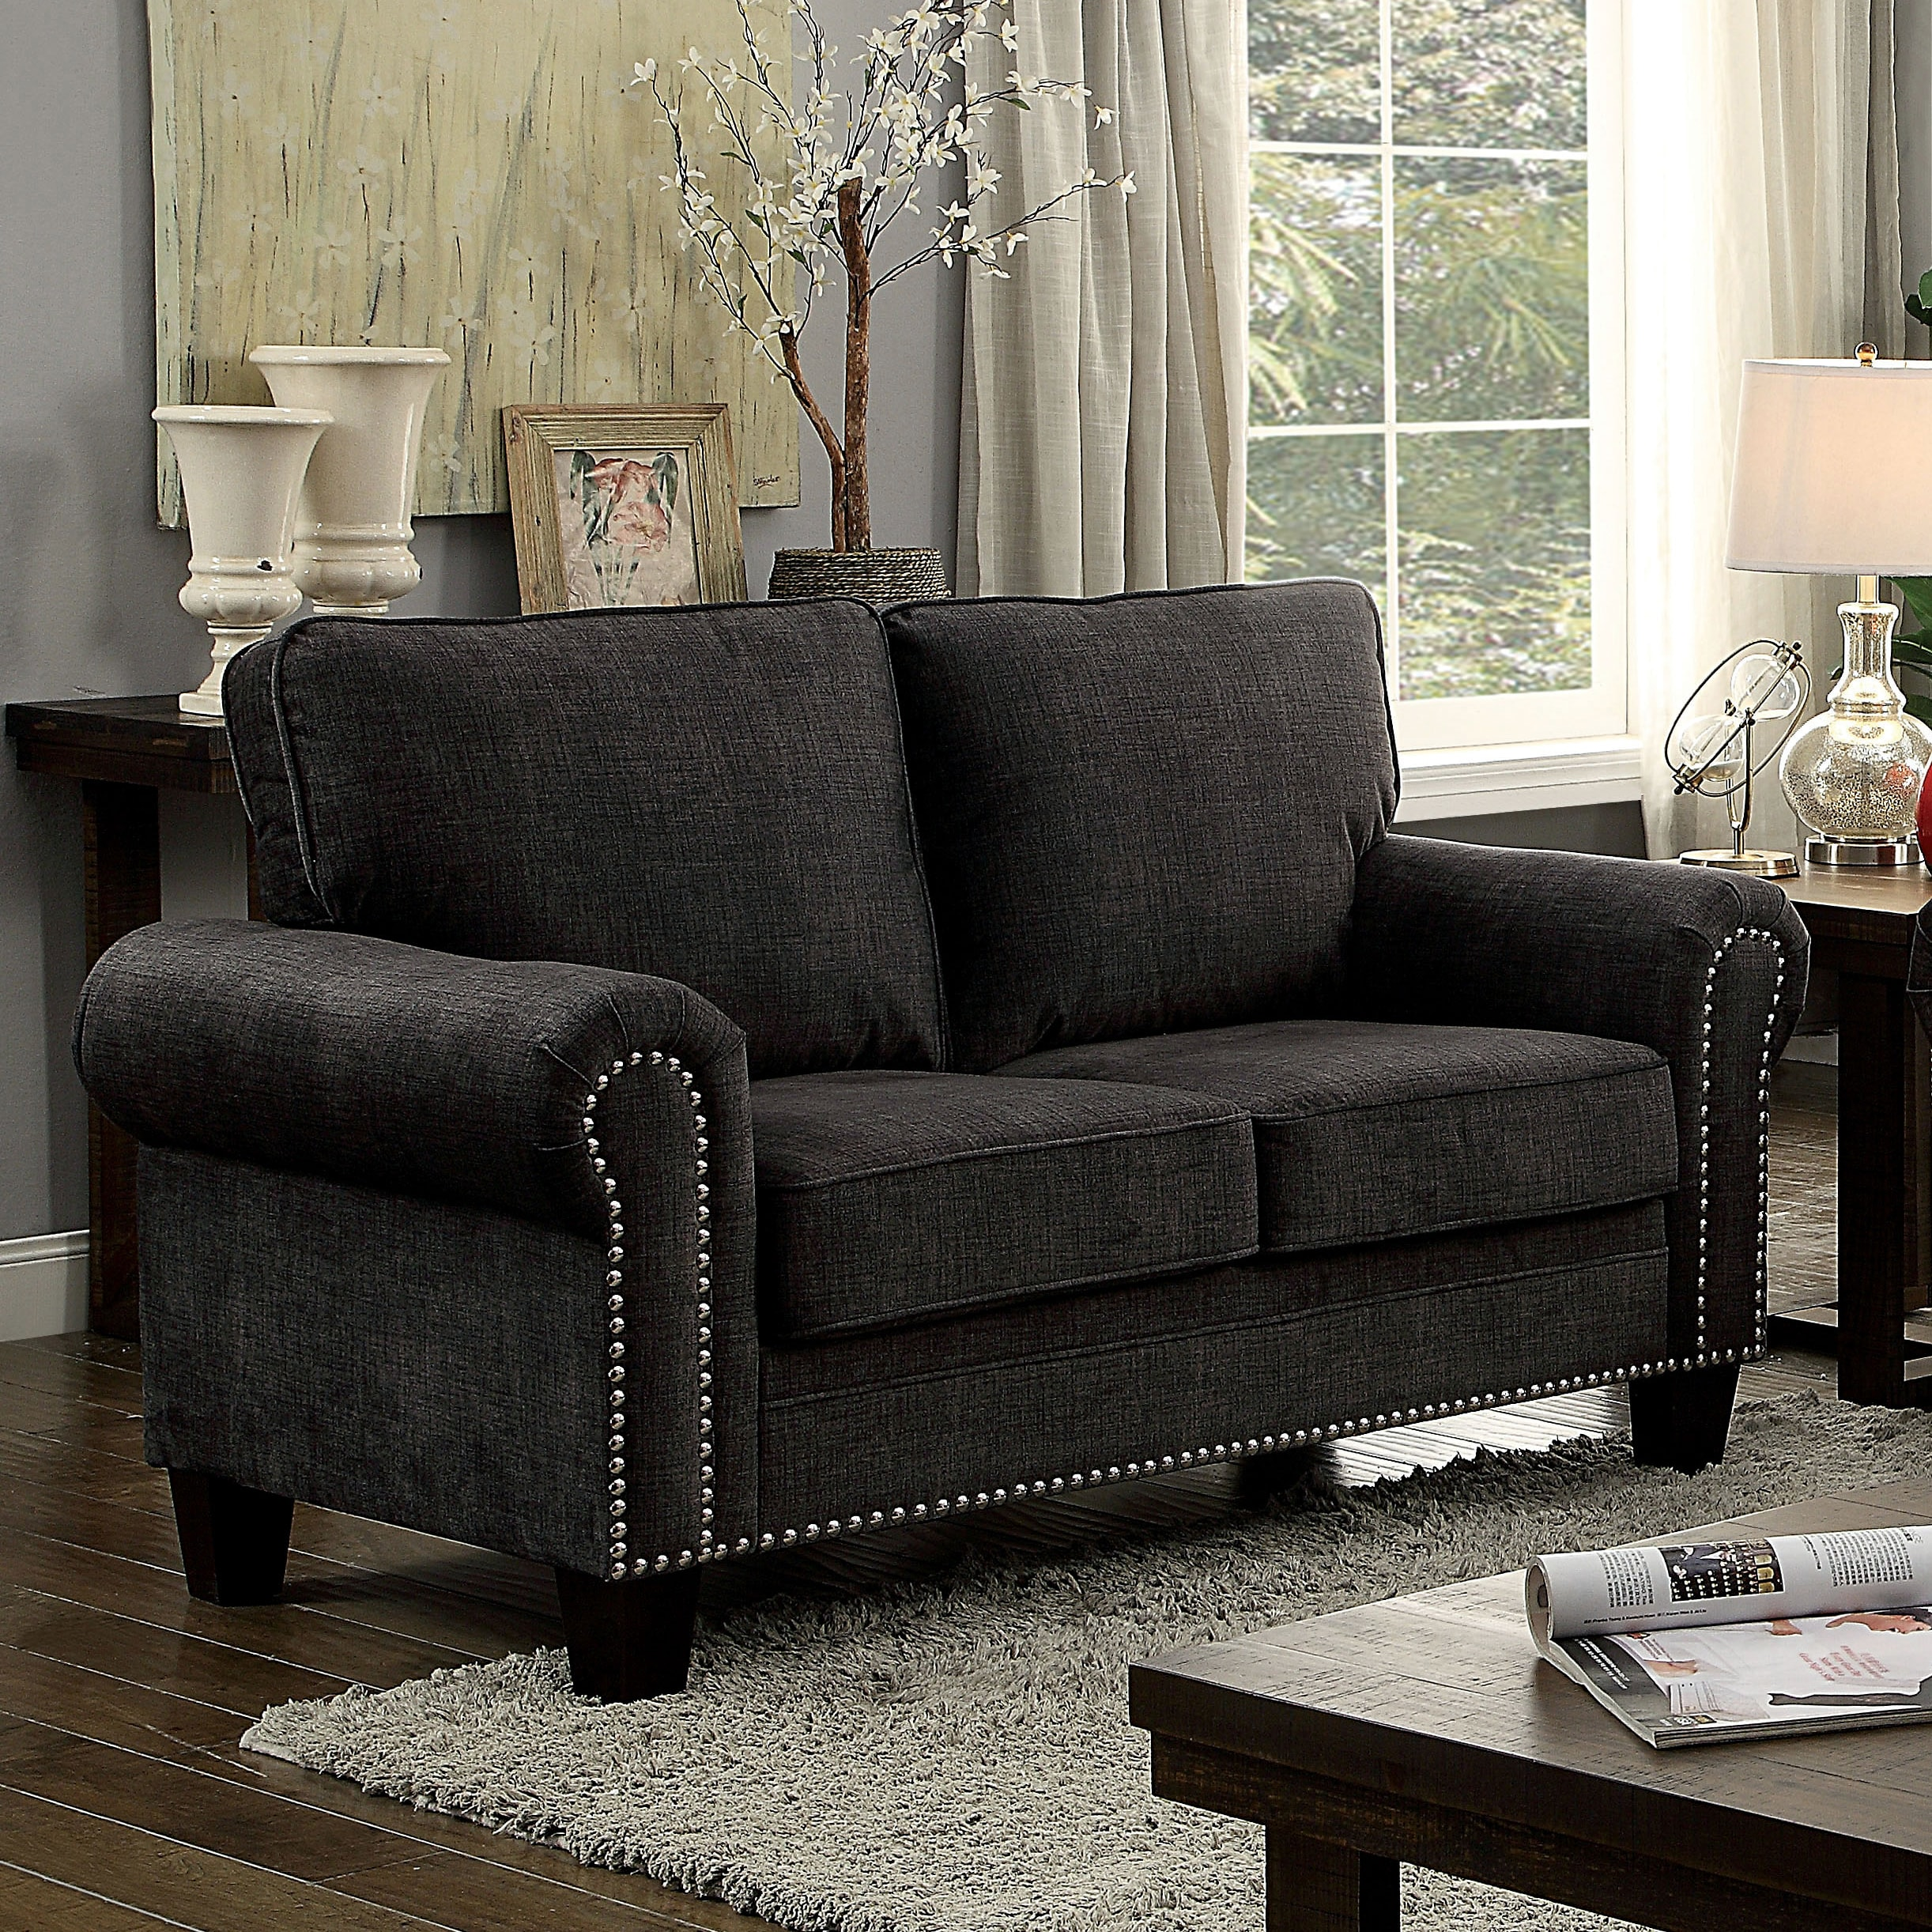 Shop Furniture Of America Jaylin 2 Piece Dark Grey Upholstered Sofa Set    Free Shipping Today   Overstock.com   18213171